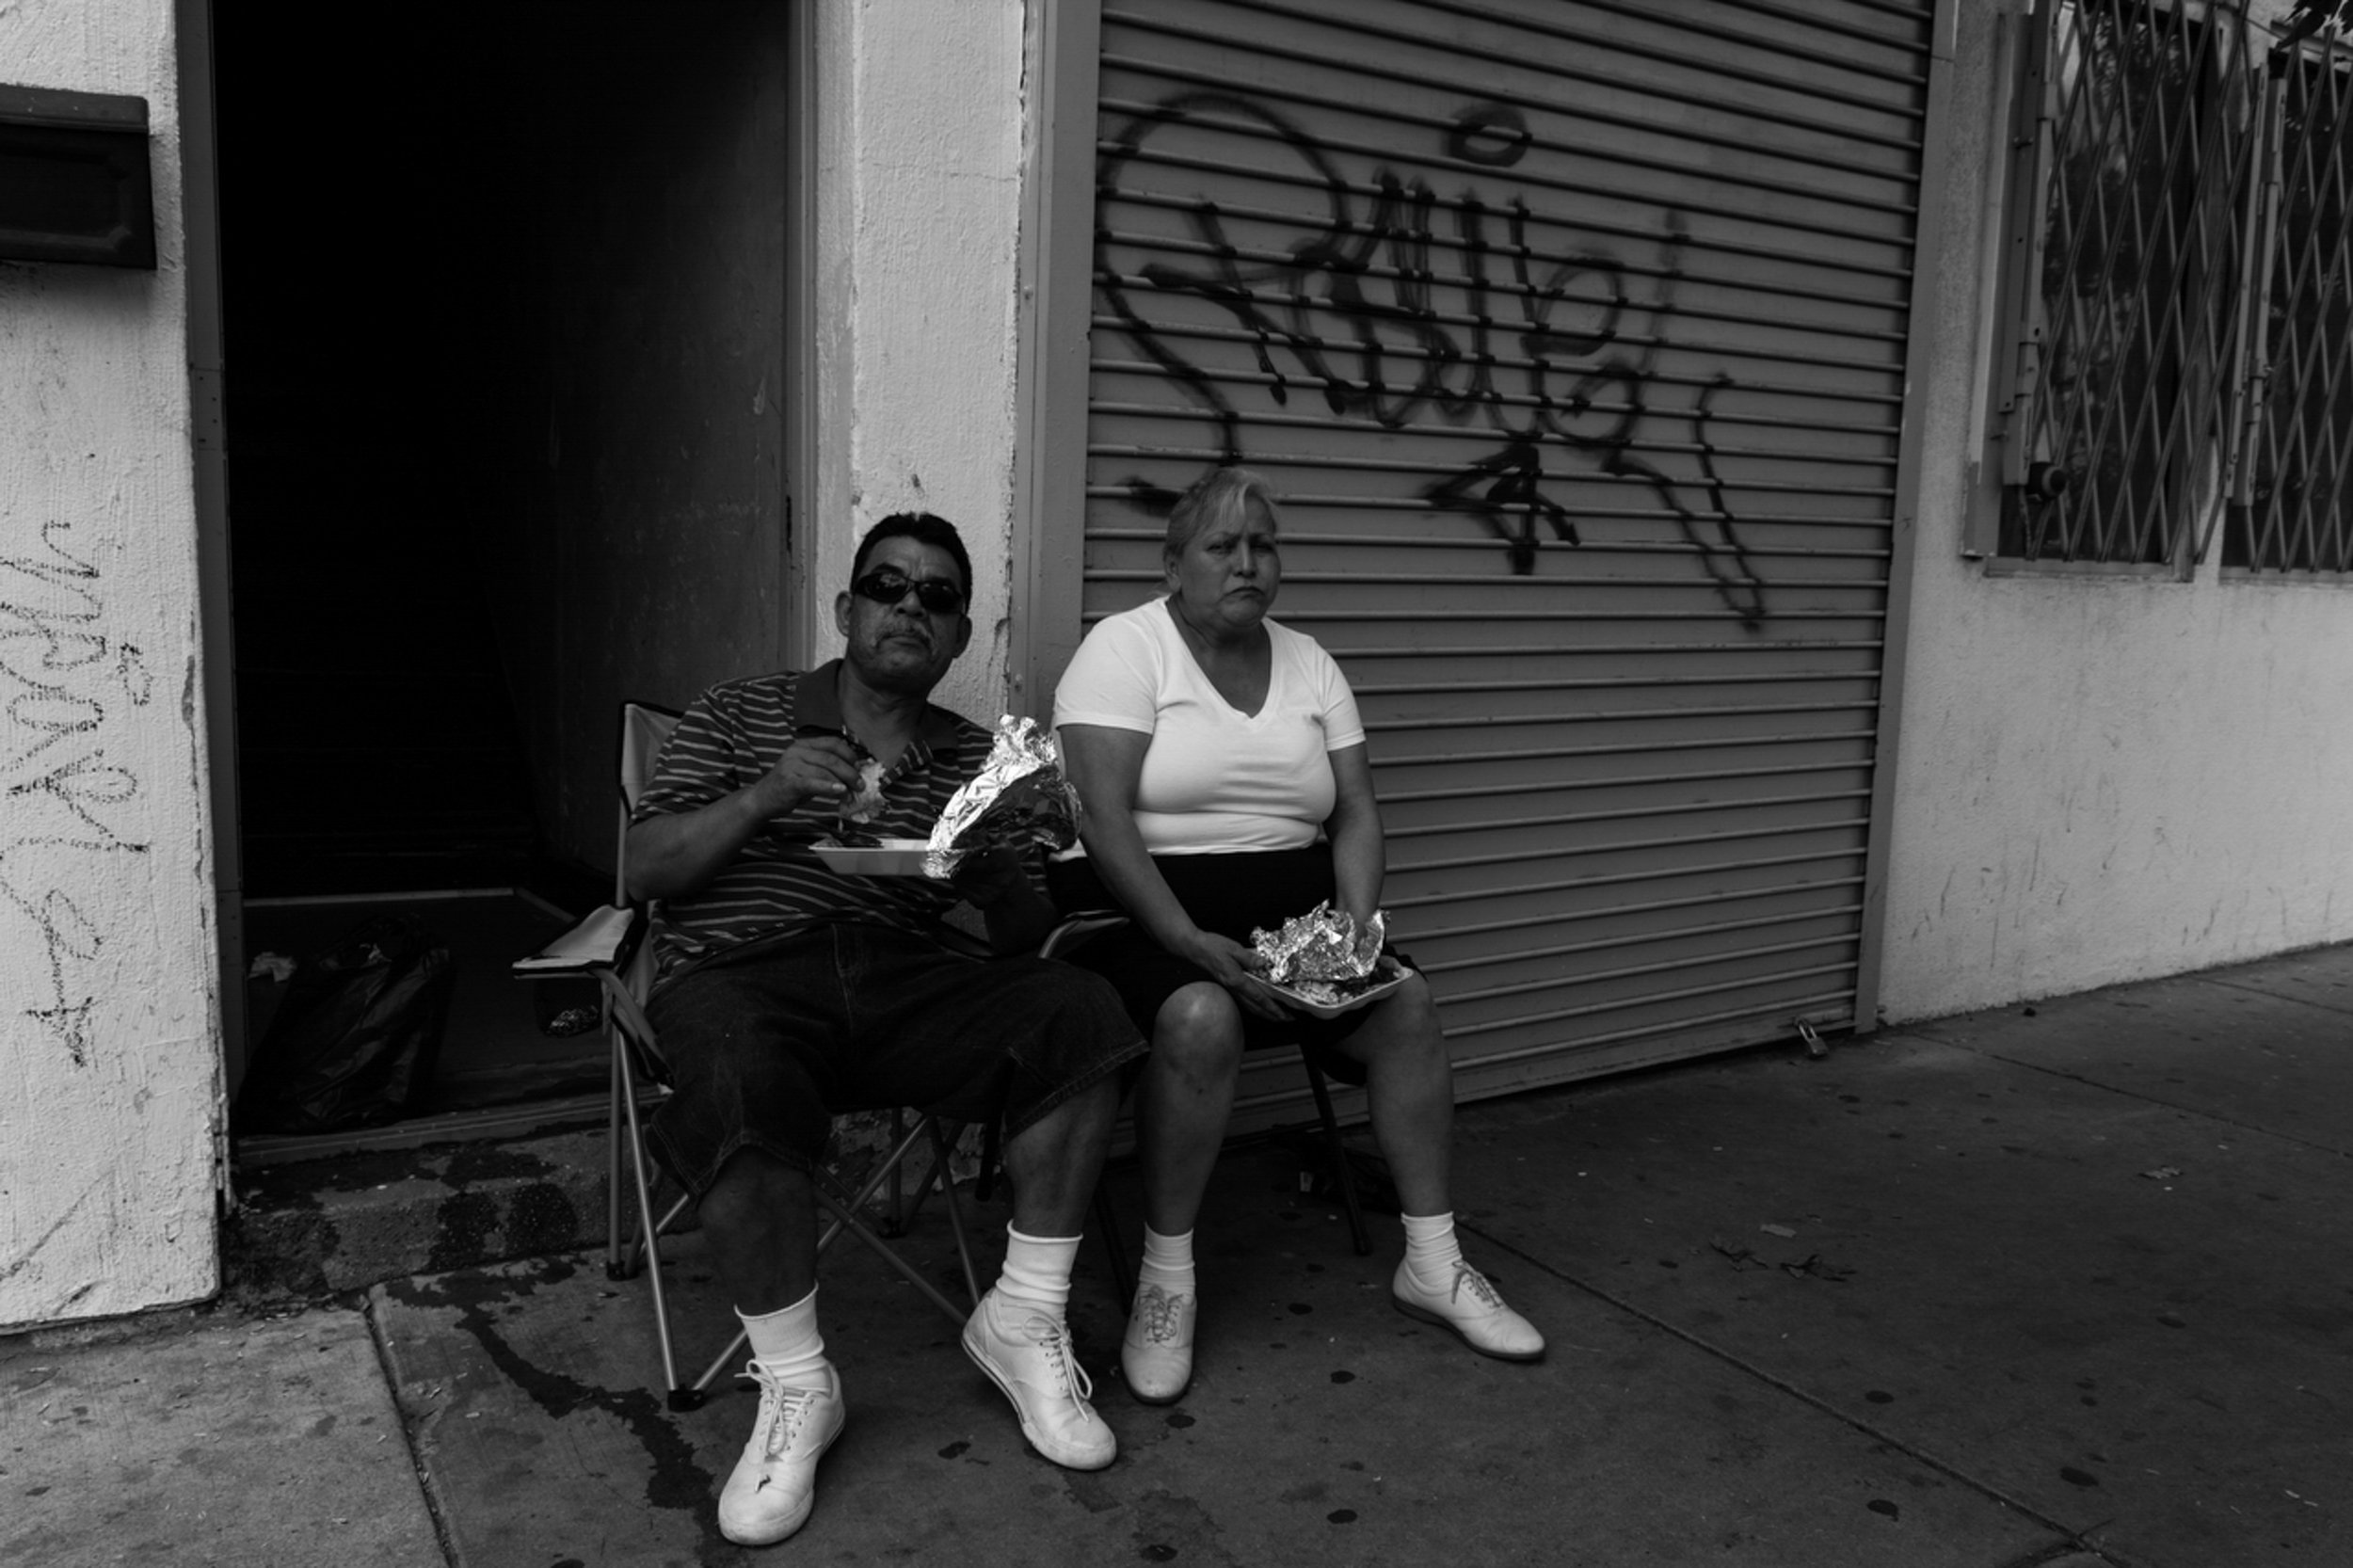 Two community members sit and eat on Blue Island, the neighborhood's pervious commercial strip.